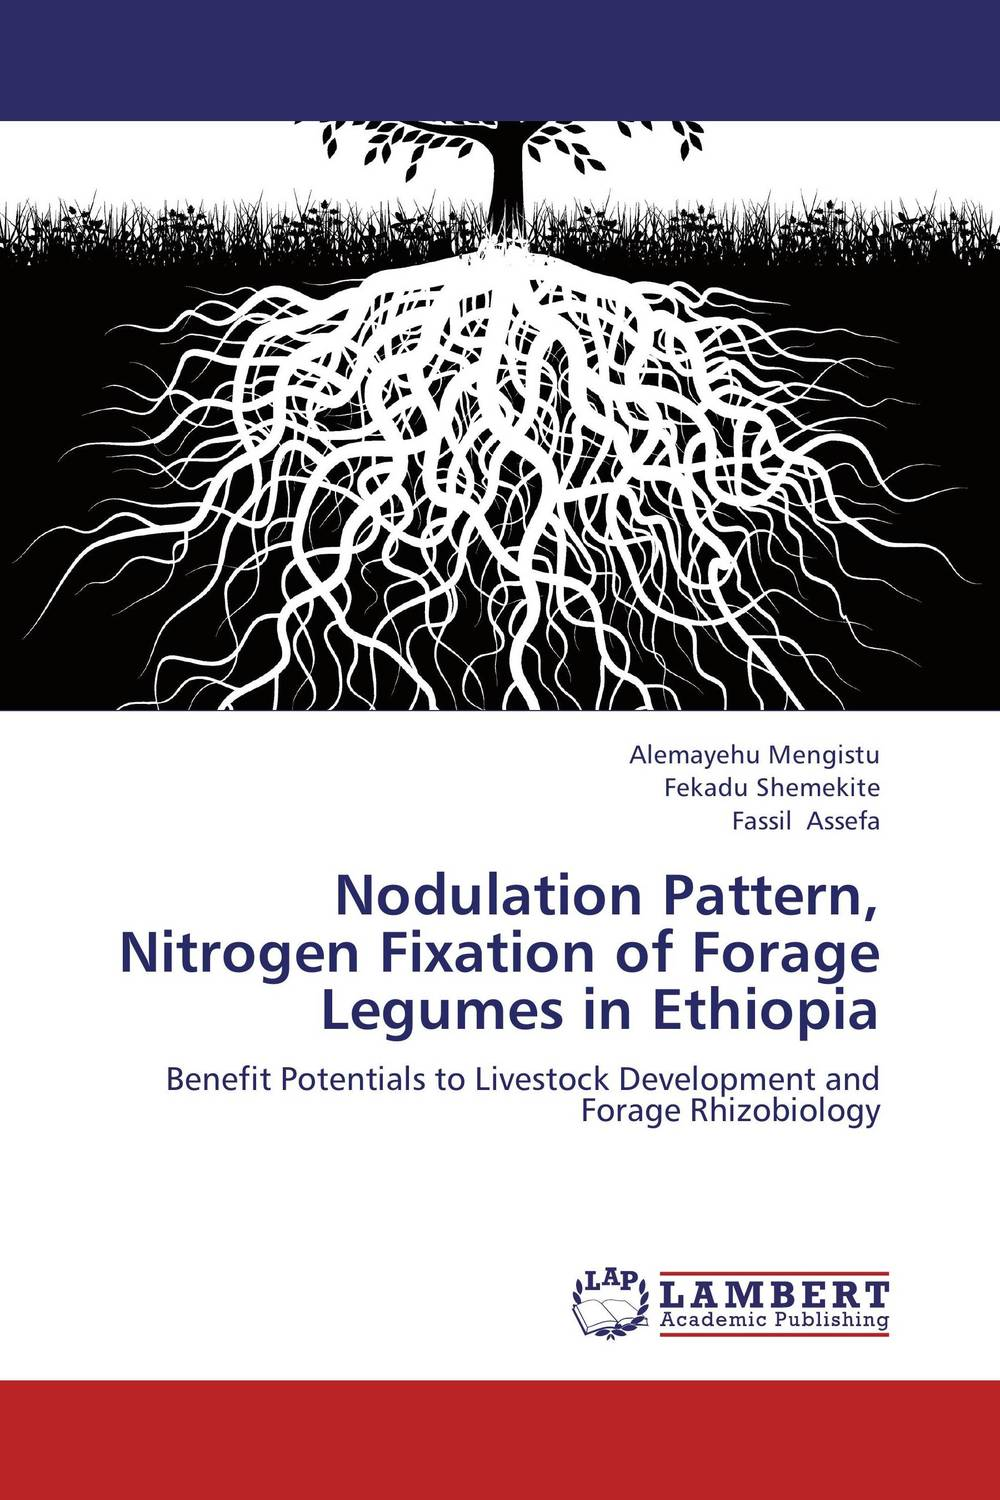 Nodulation Pattern, Nitrogen Fixation of Forage Legumes in Ethiopia ravindra kumar jain nod factors and nodulation process by rhizobia in cicer arietinum